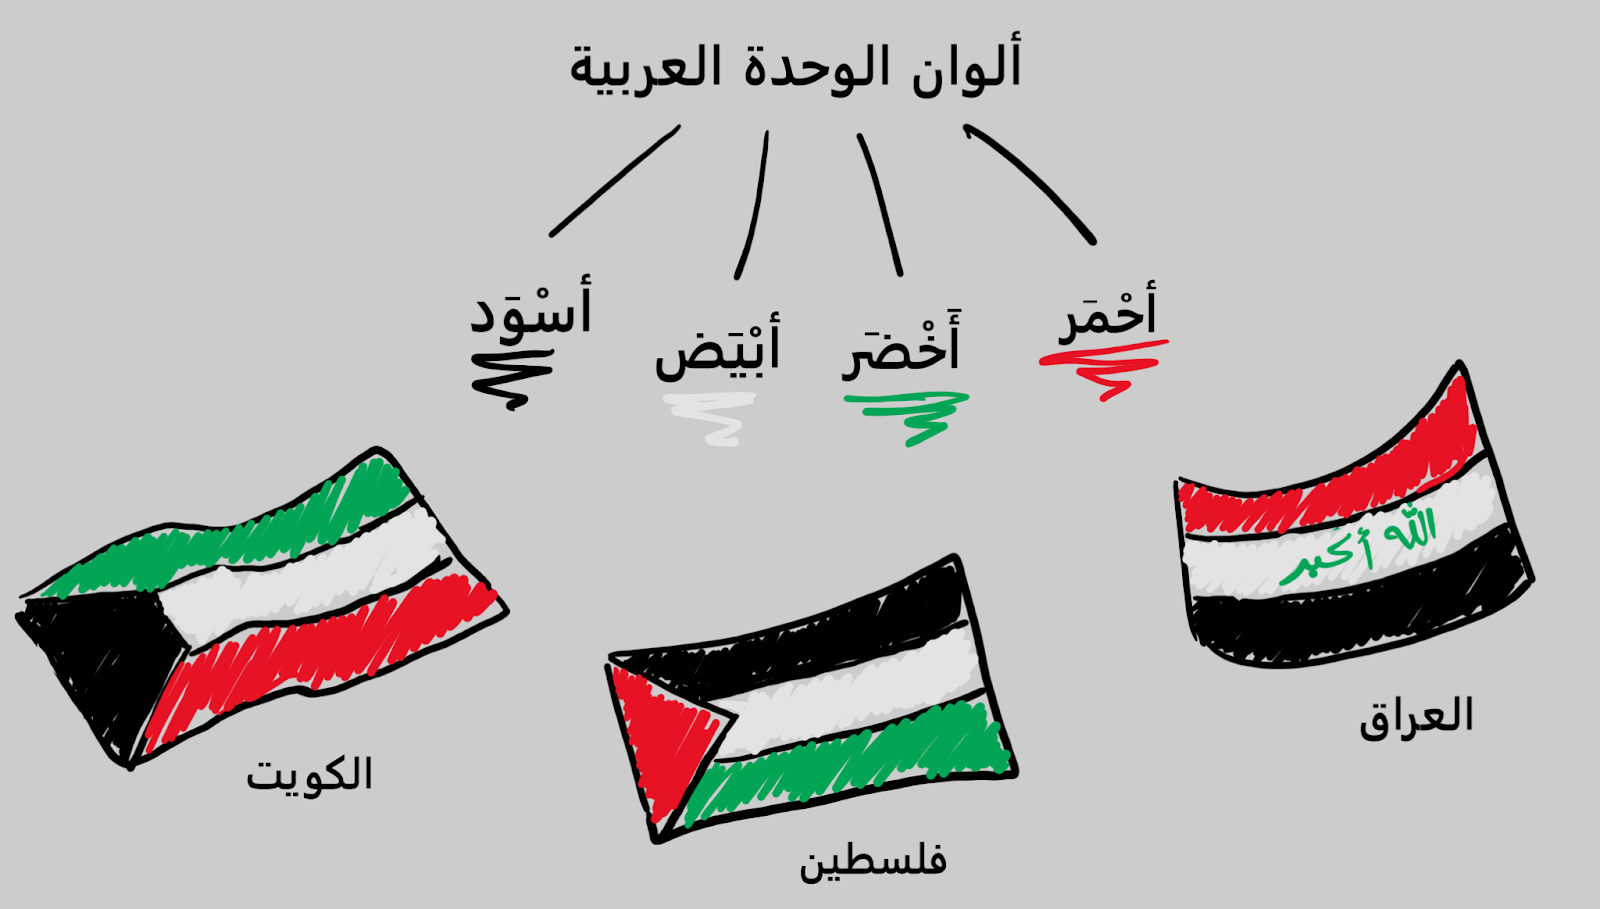 The Meaning and History behind the Pan-Arab Colors